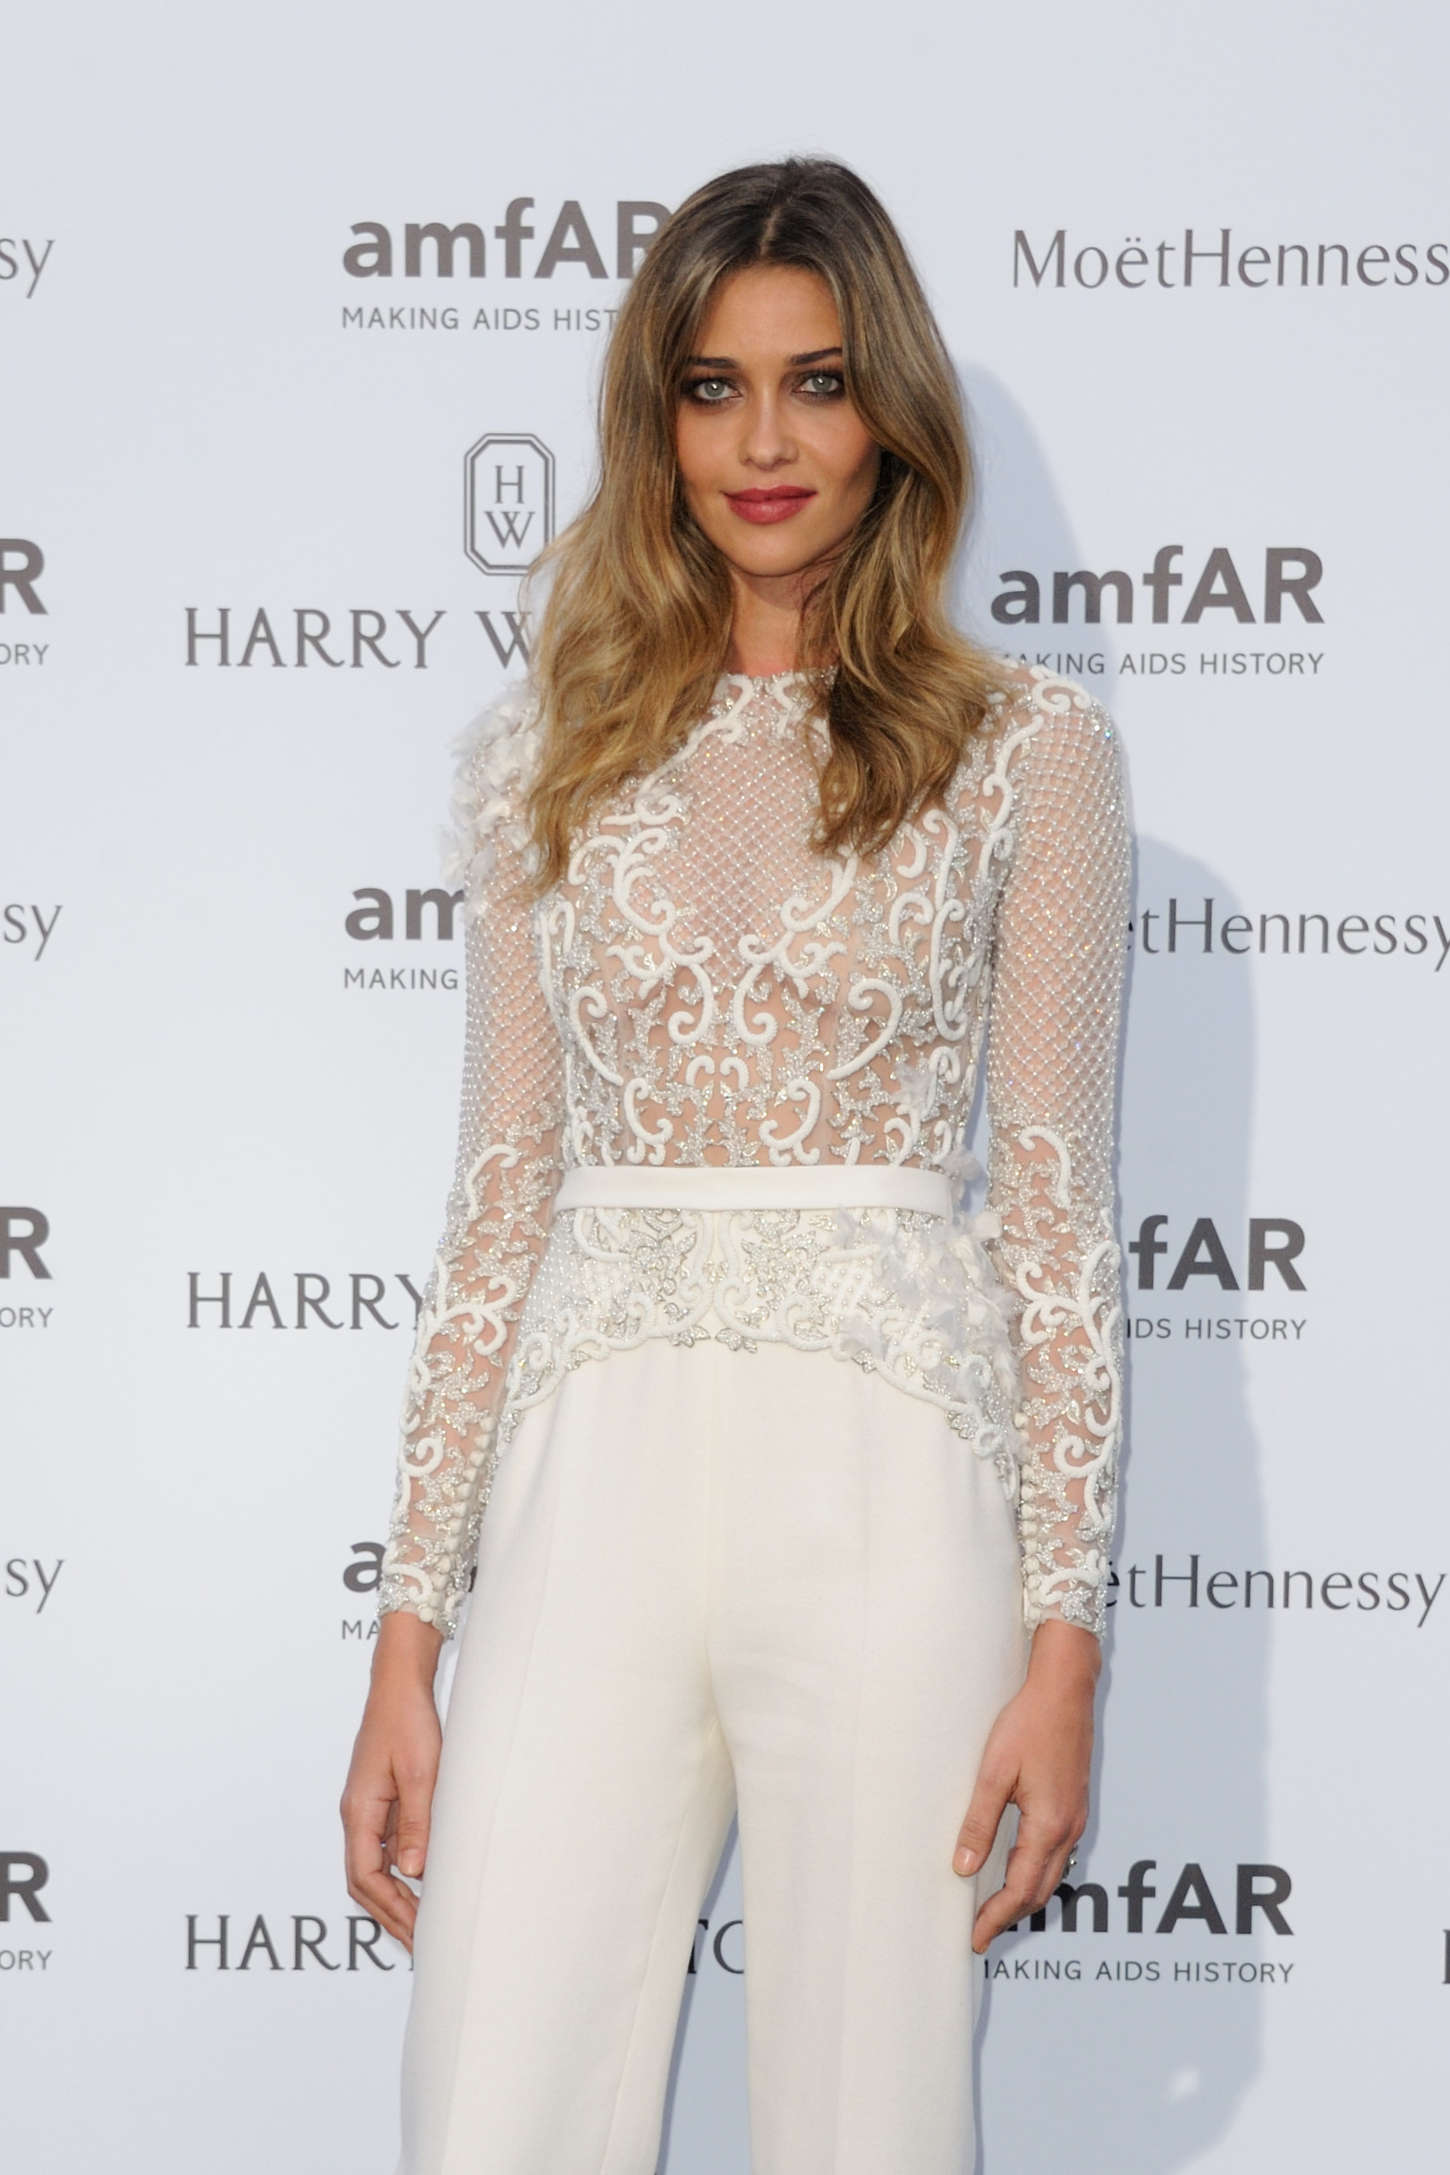 Ana Beatriz Barros - amfAR Dinner 2015 in Paris